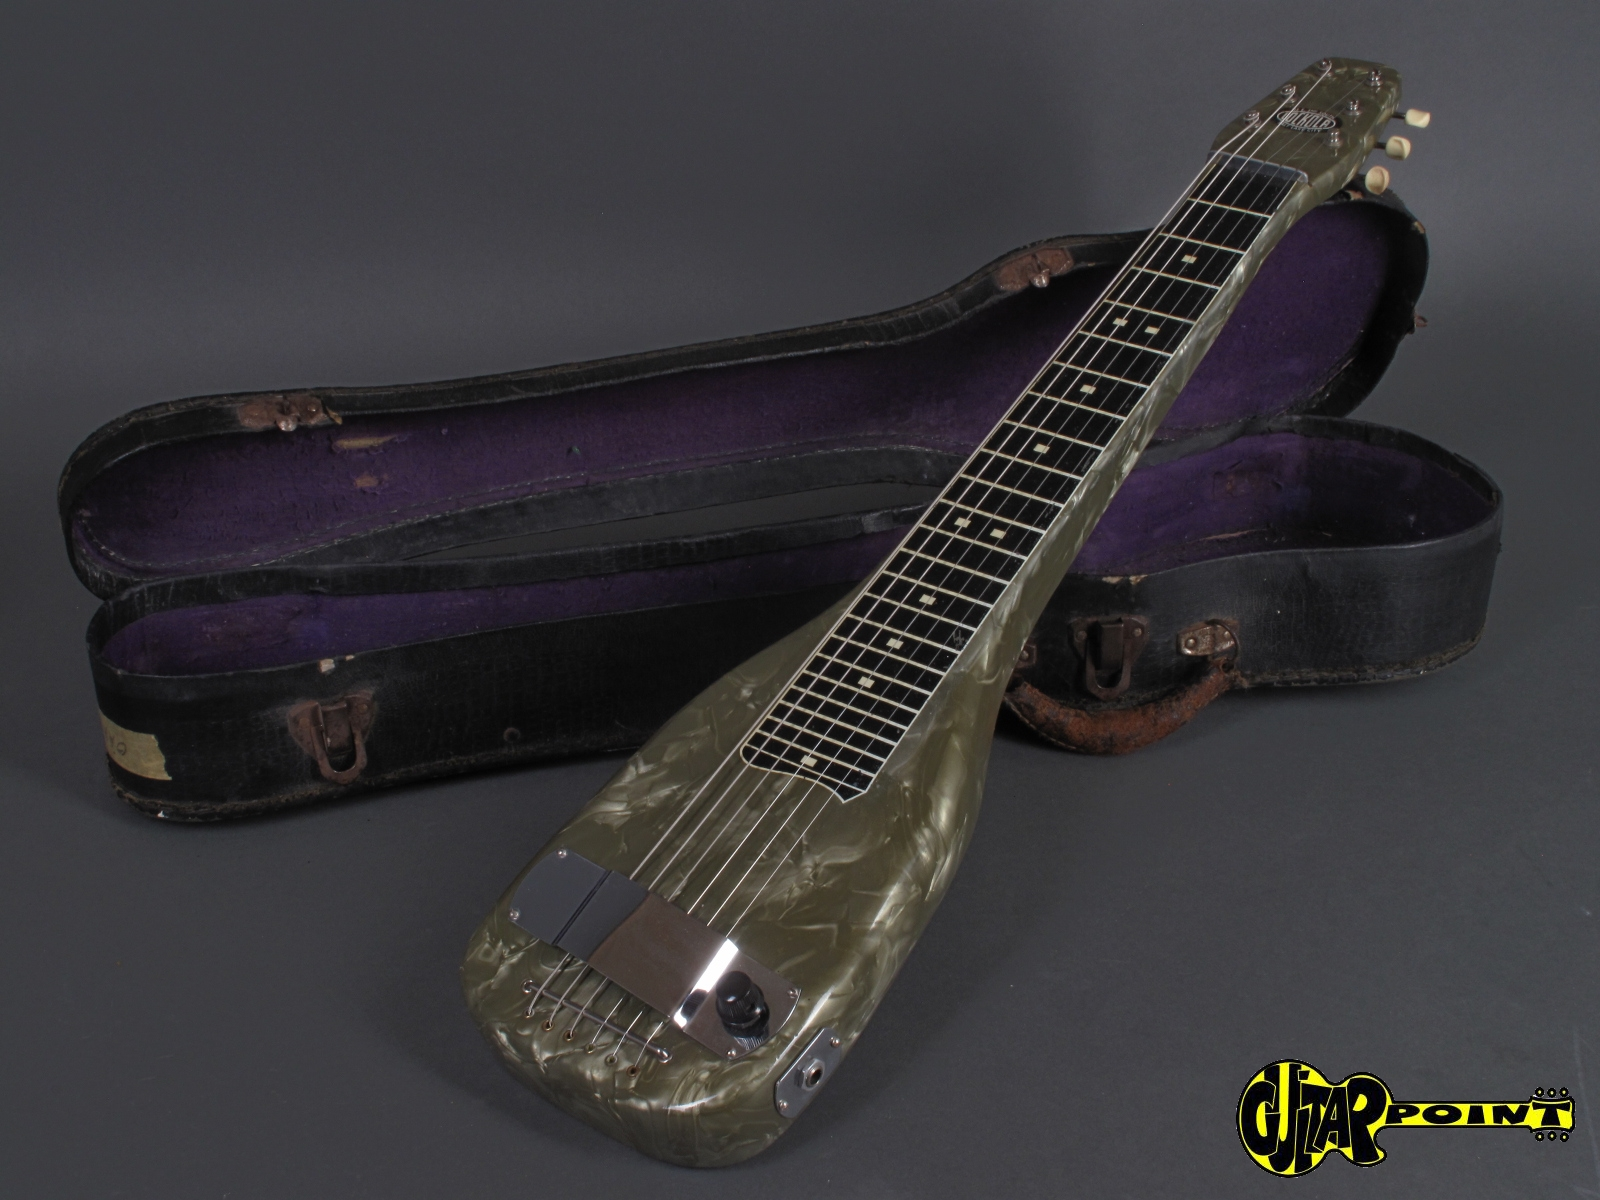 https://guitarpoint.de/app/uploads/products/1940s-lockola-lapsteel-made-by-magnatone/Lockola40Lapsteel_10.jpg